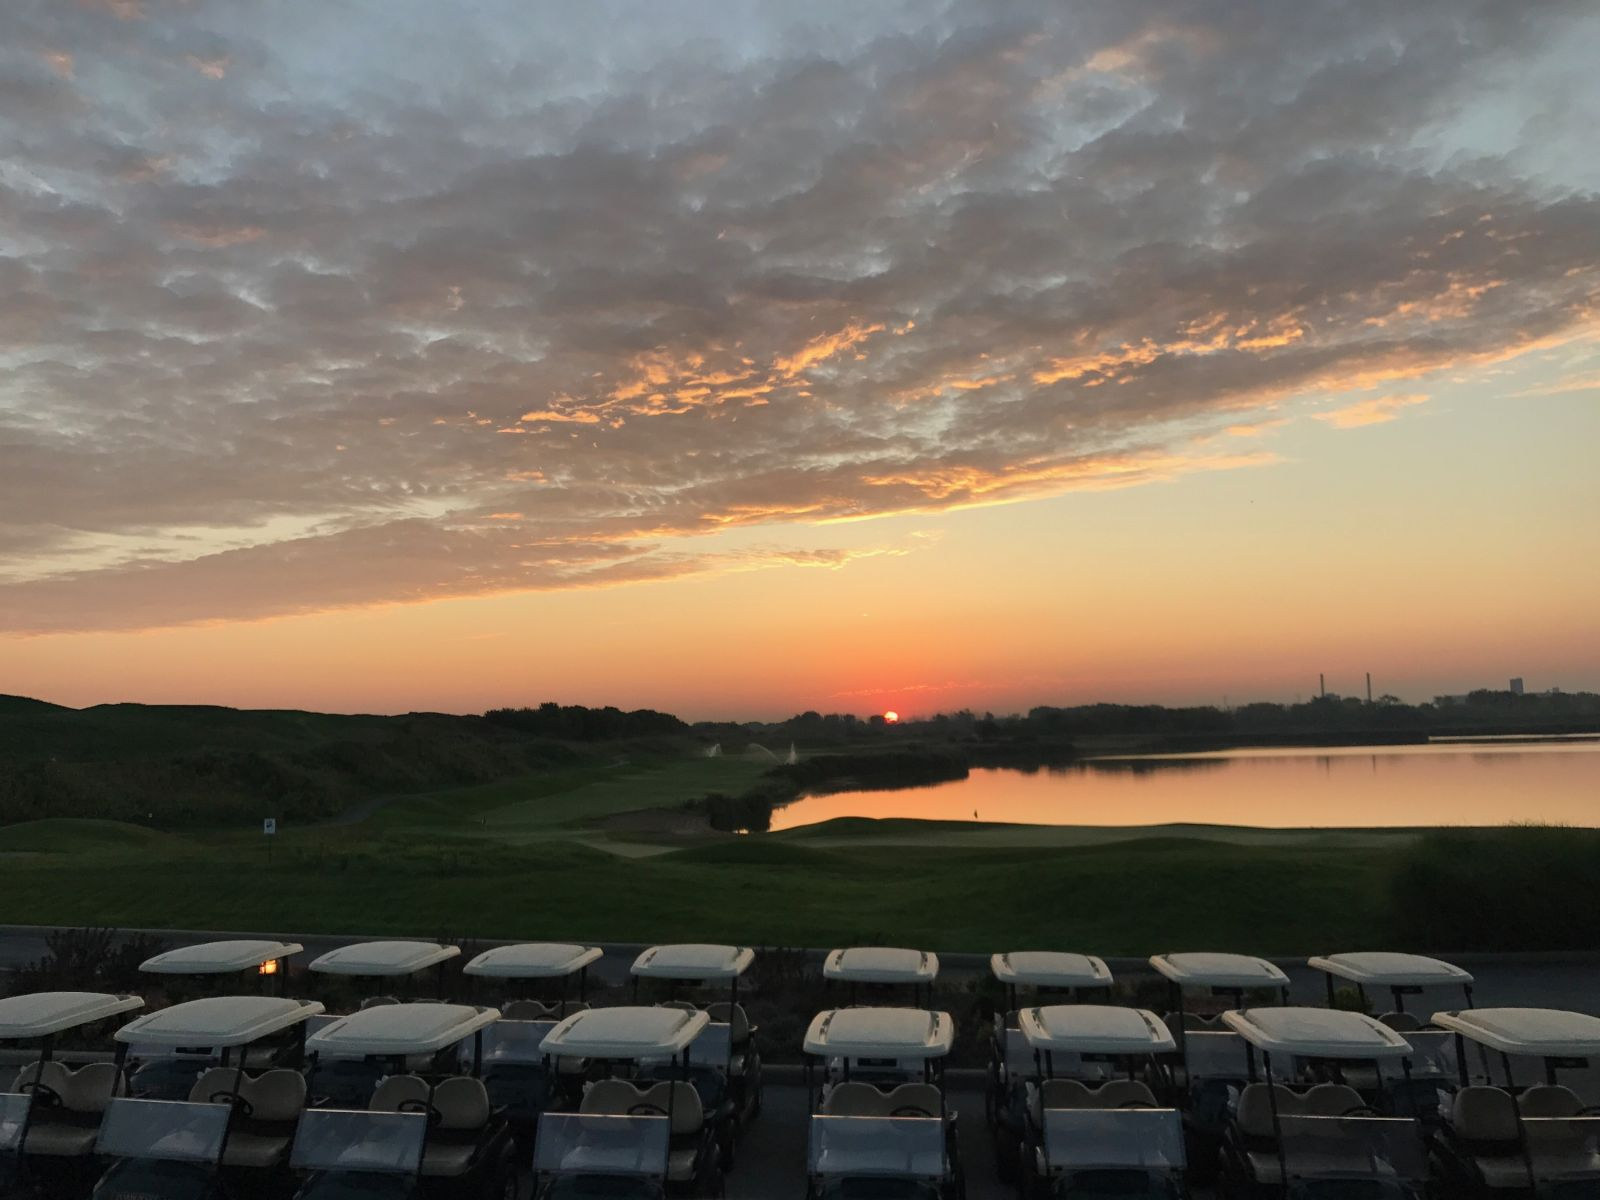 The sun sets over a fleet of golf carts at Harborside International Golf Center